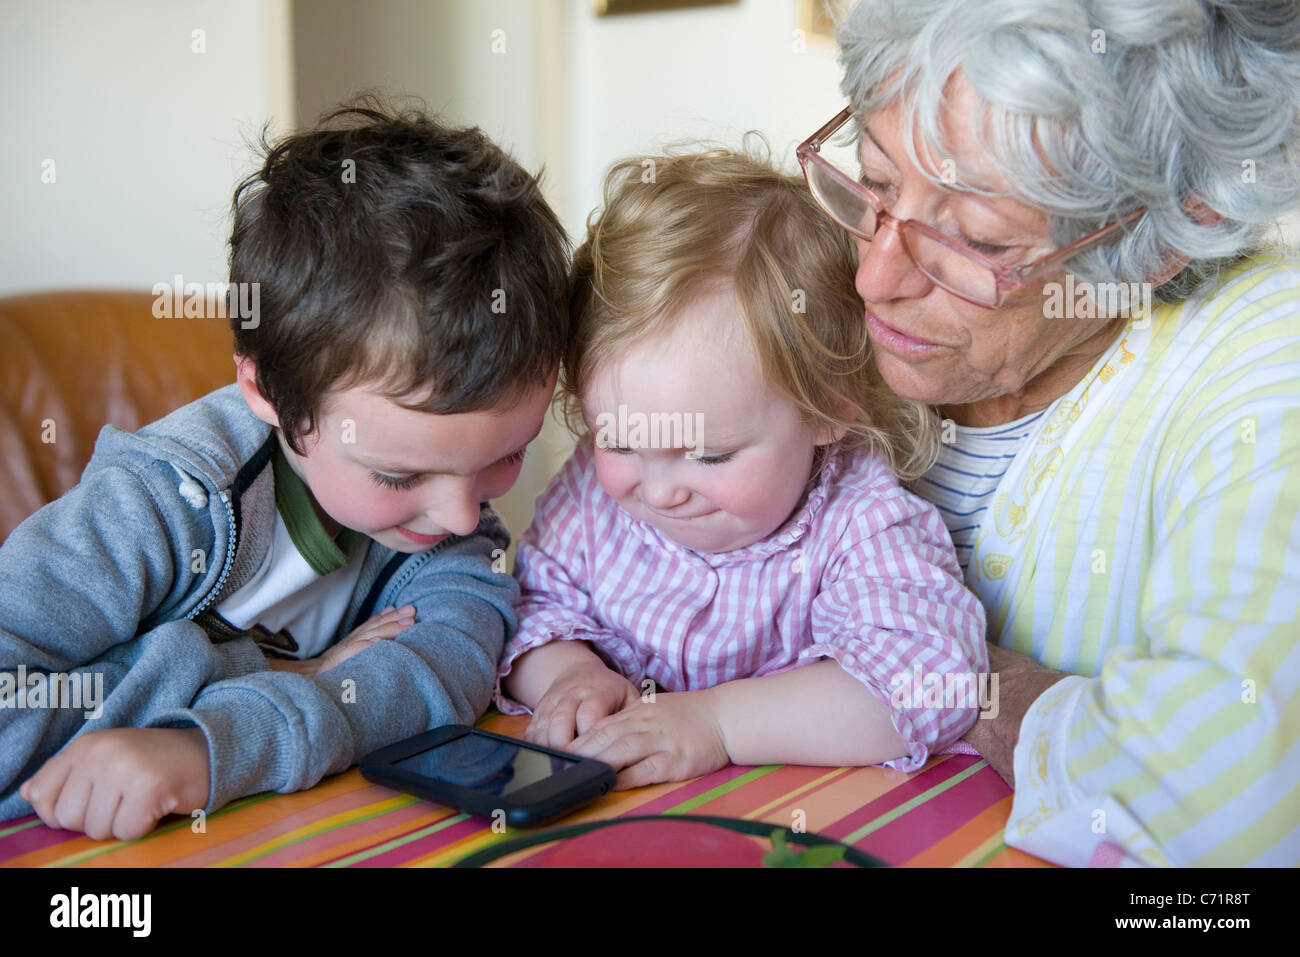 Grandmother and young grandchildren looking at cell phone together - Stock Image